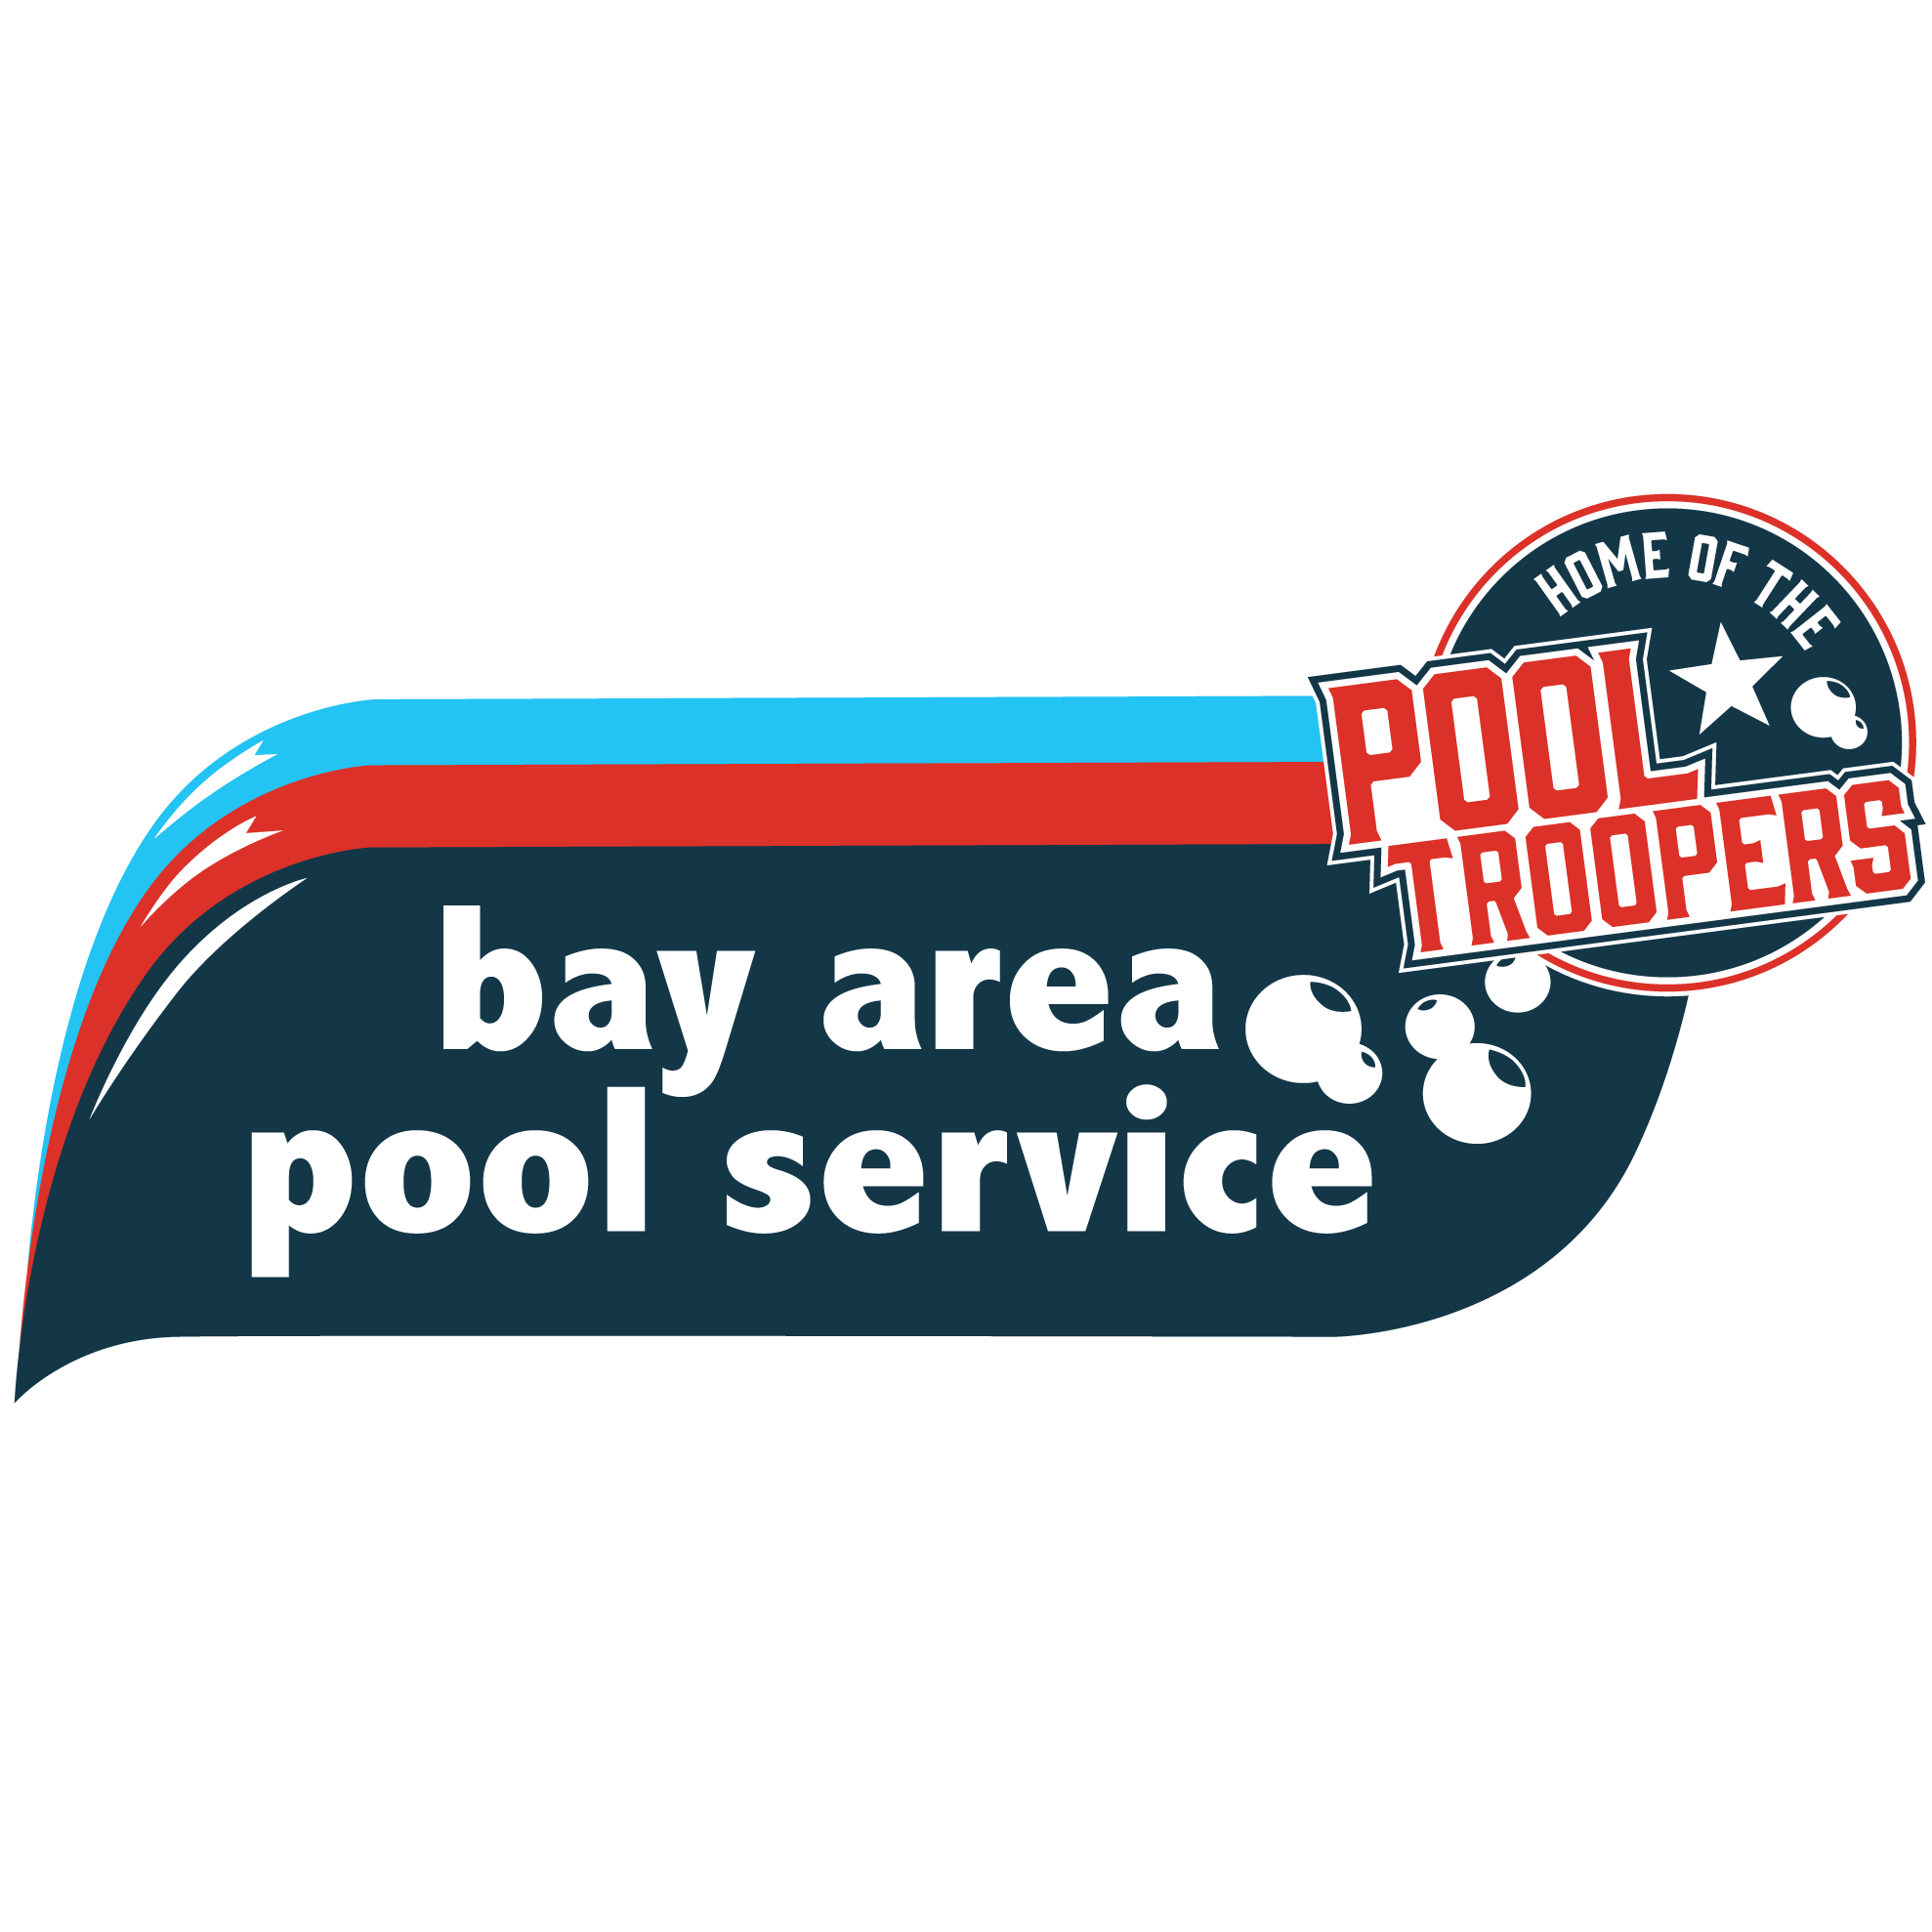 Bay Area Pool Service Home of the Pool Troopers - Cape Coral, FL - Swimming Pools & Spas